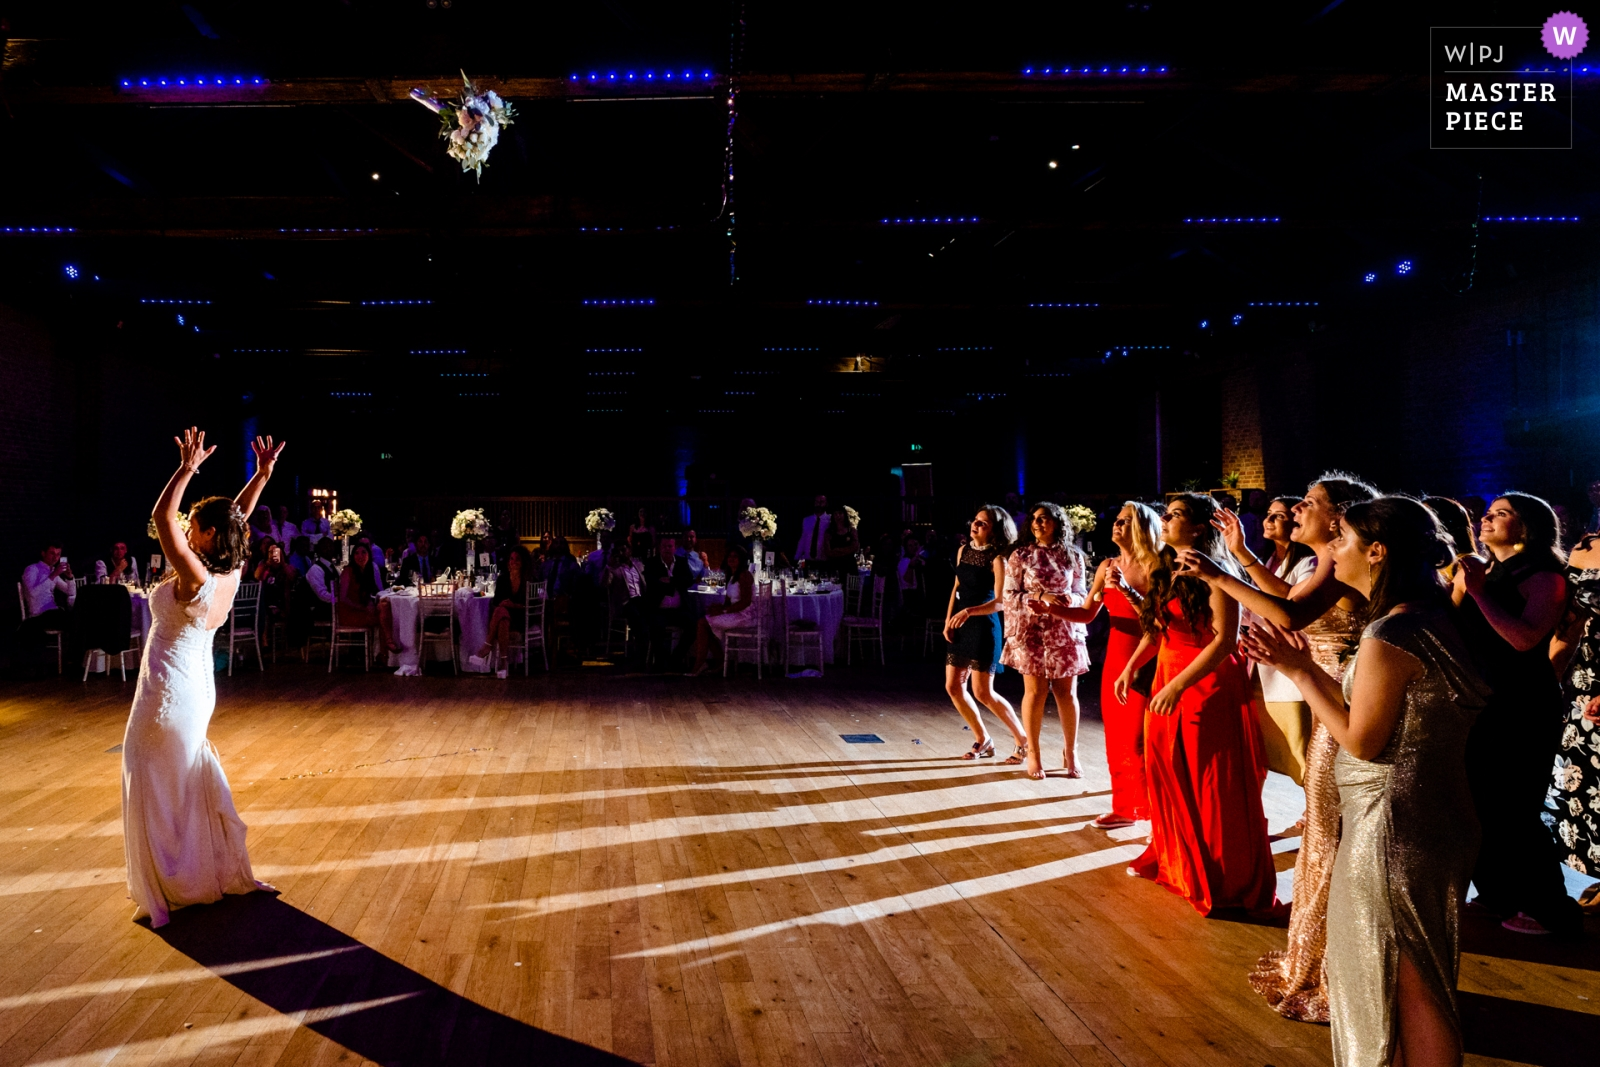 The Bride tosses her bouquet - Hertfordshire, England Wedding Photography -  | The Brewery, London, UK